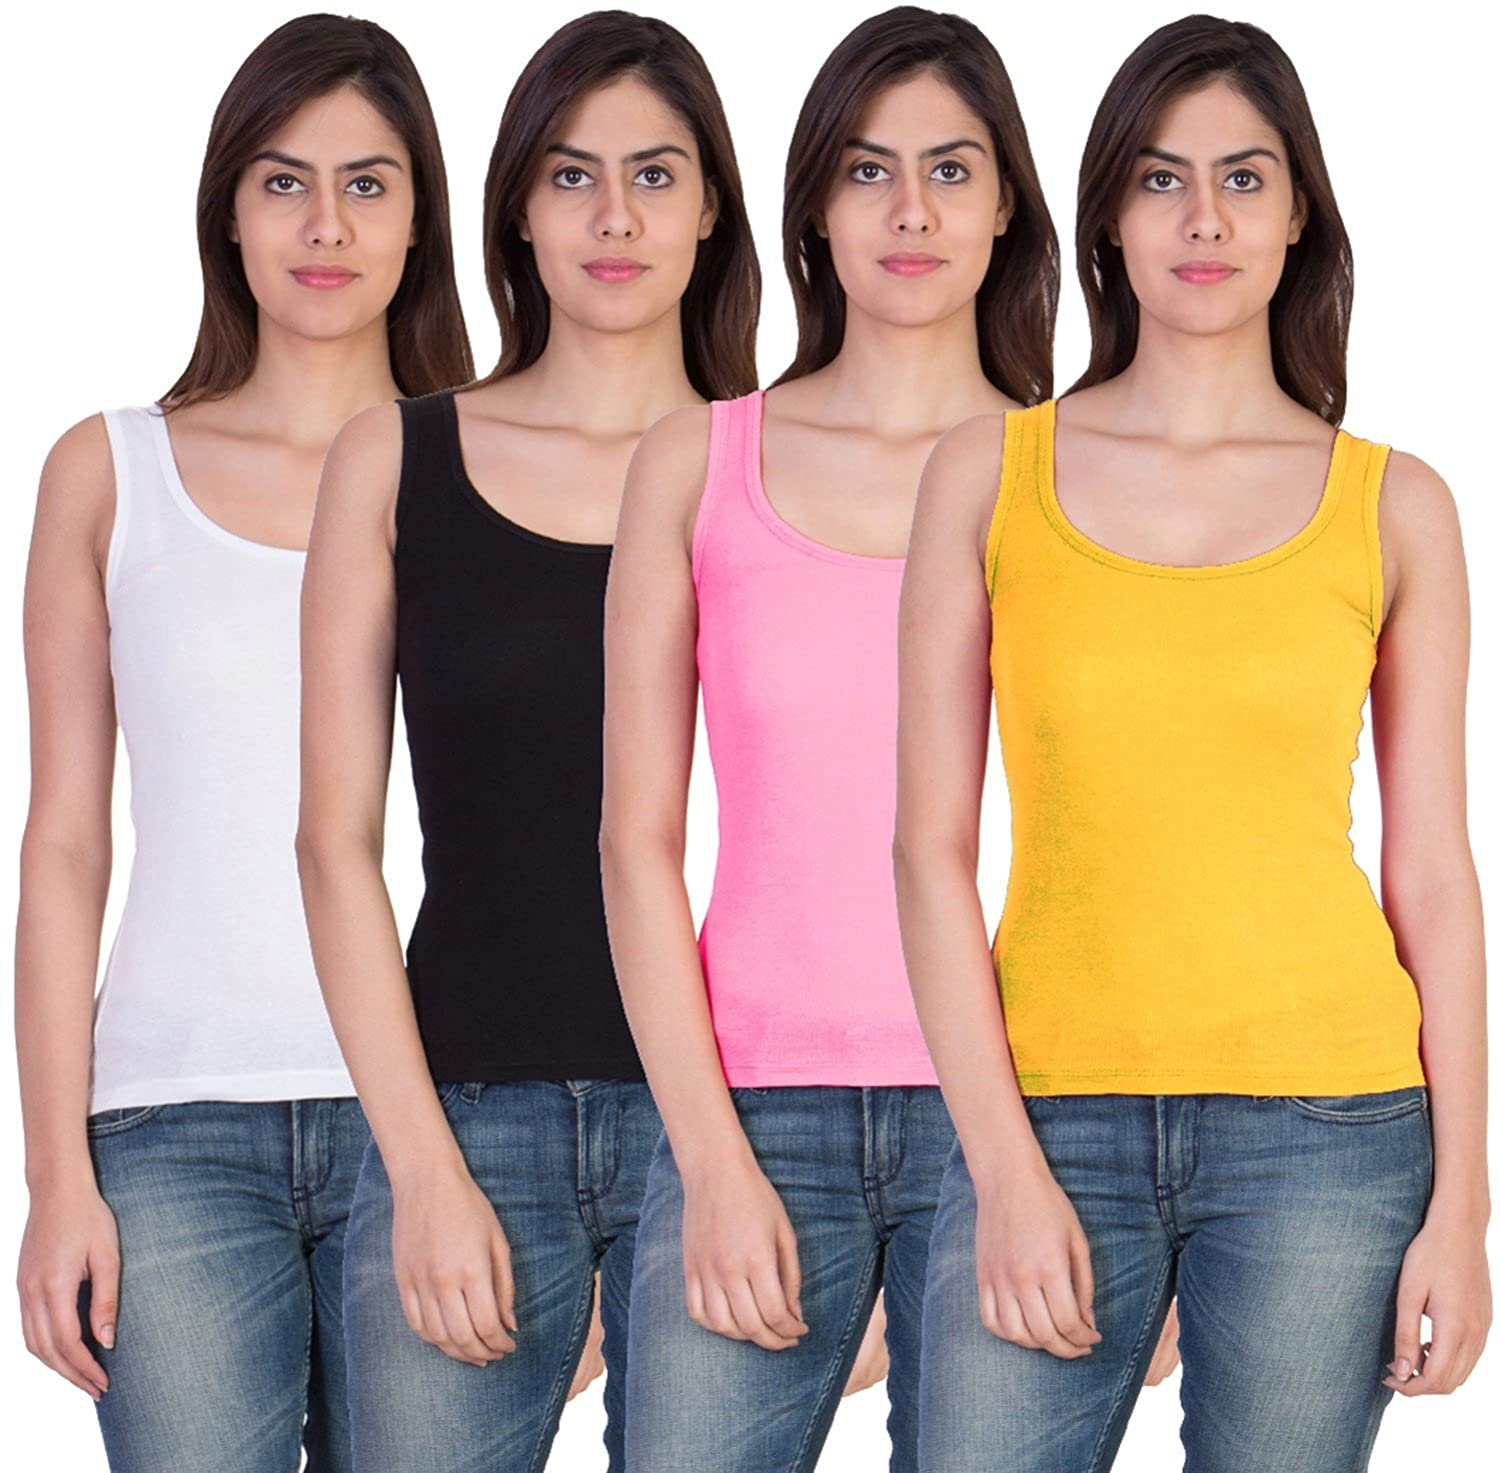 Combo of 4 Tank Top Vest Camisole Sando for Women Multi Color